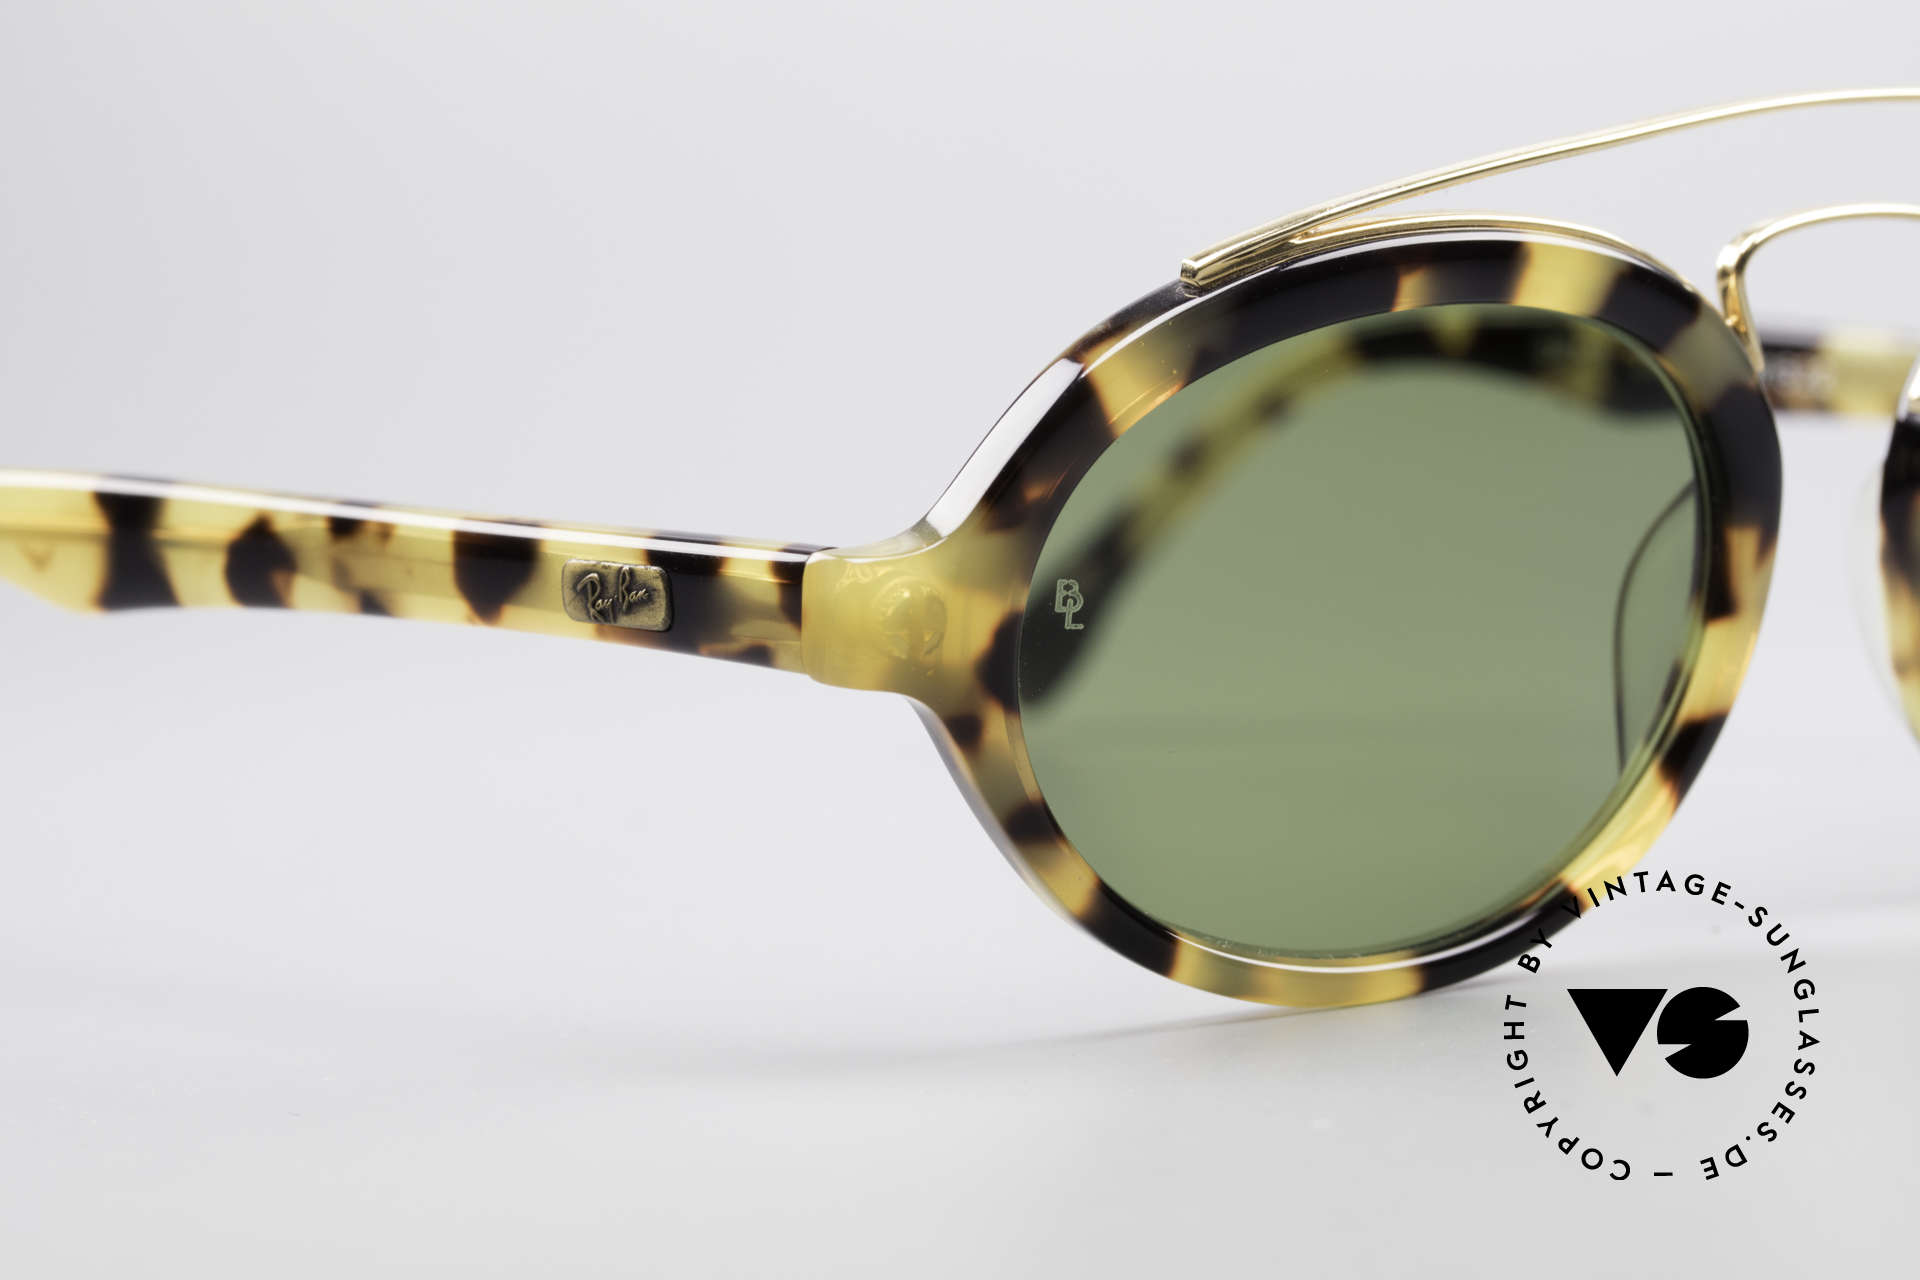 Ray Ban Gatsby Style 6 Old Ray-Ban USA Sunglasses, unworn (like all our vintage RAY-BAN Gatsby), Made for Men and Women